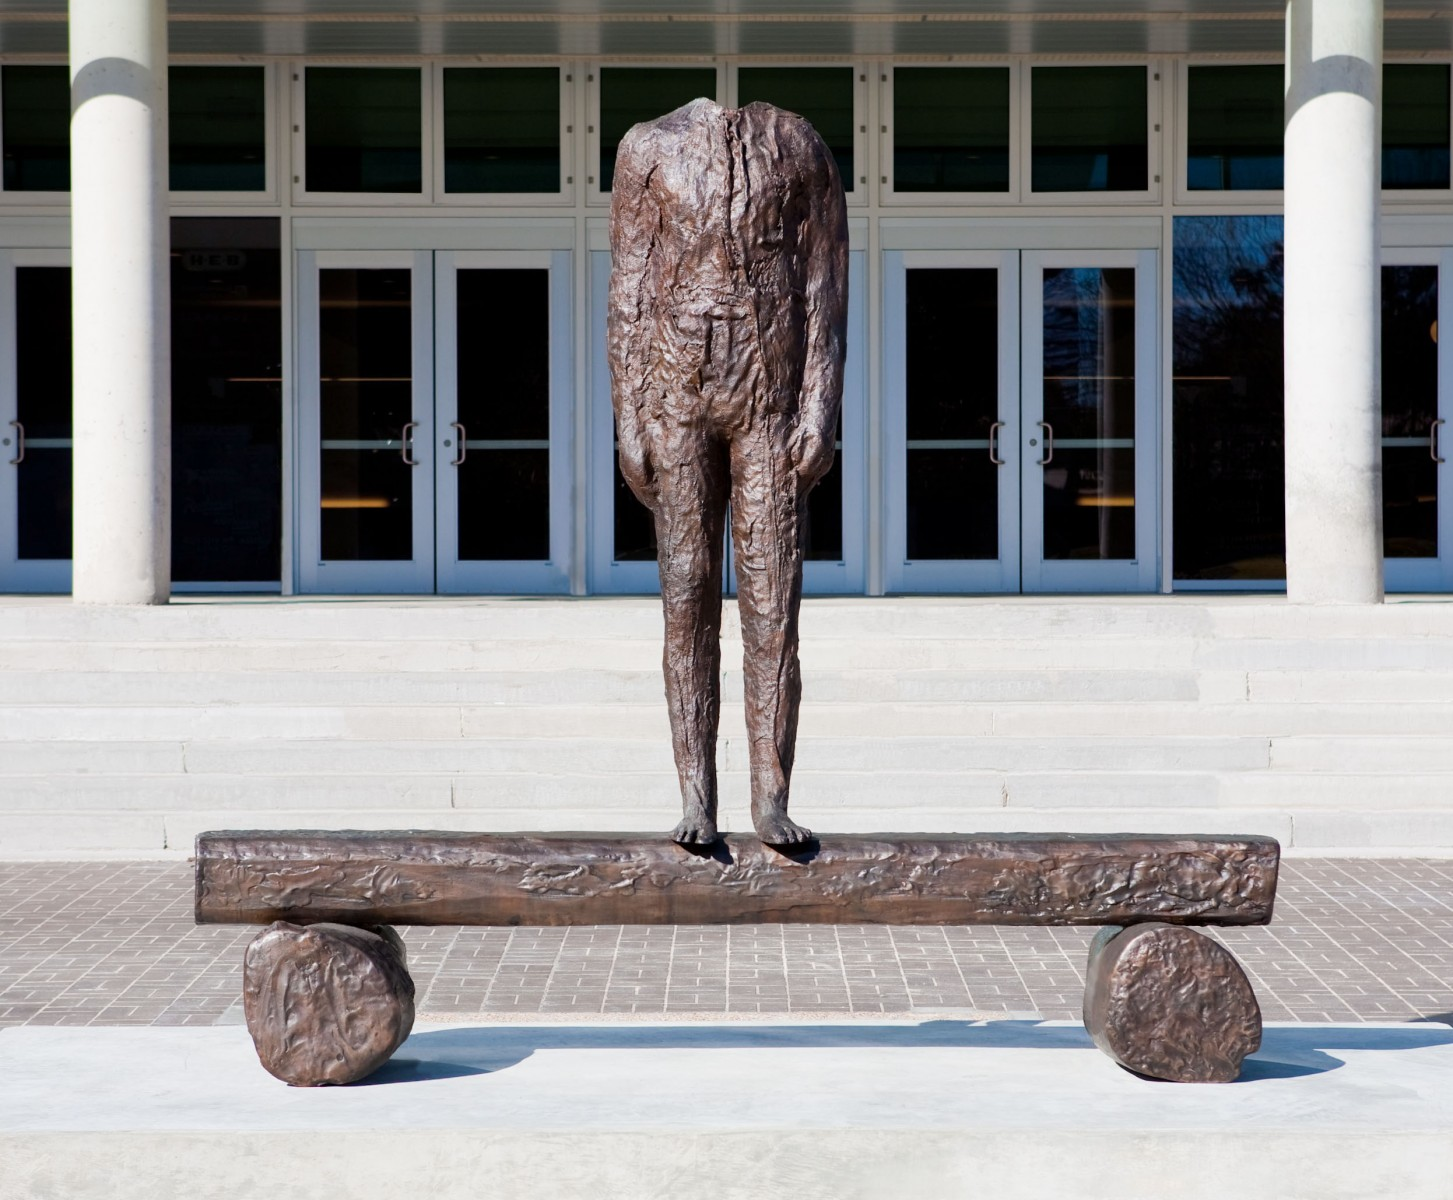 Headless statue in front of a large building